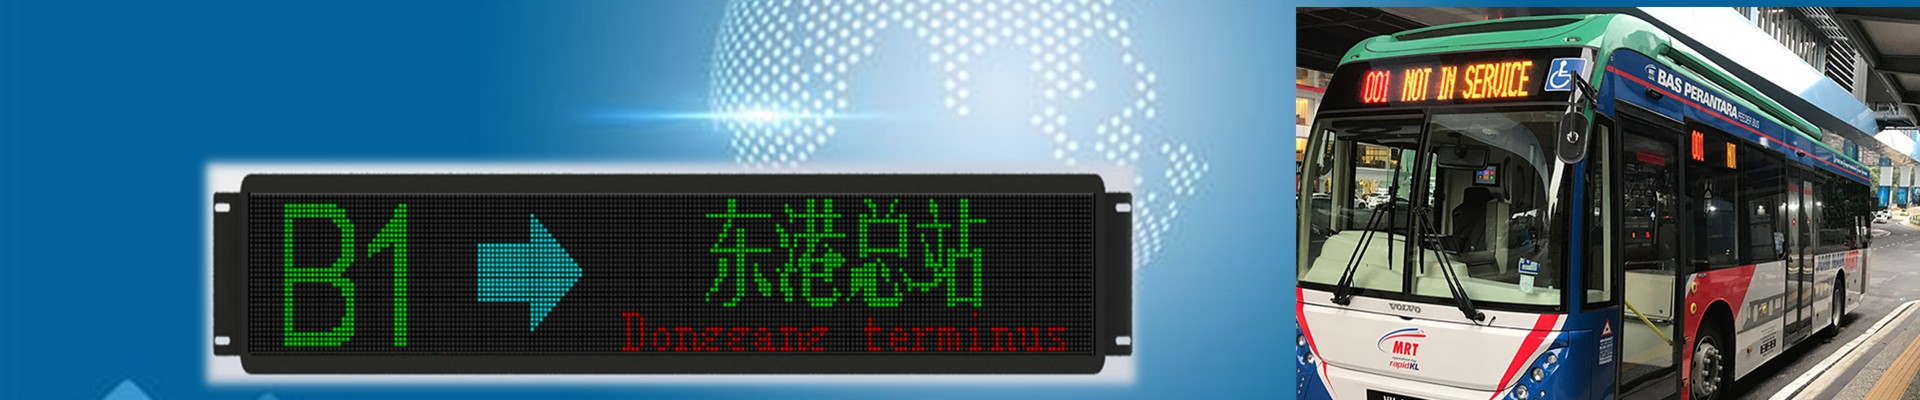 Bus route destination display sign manufacturer